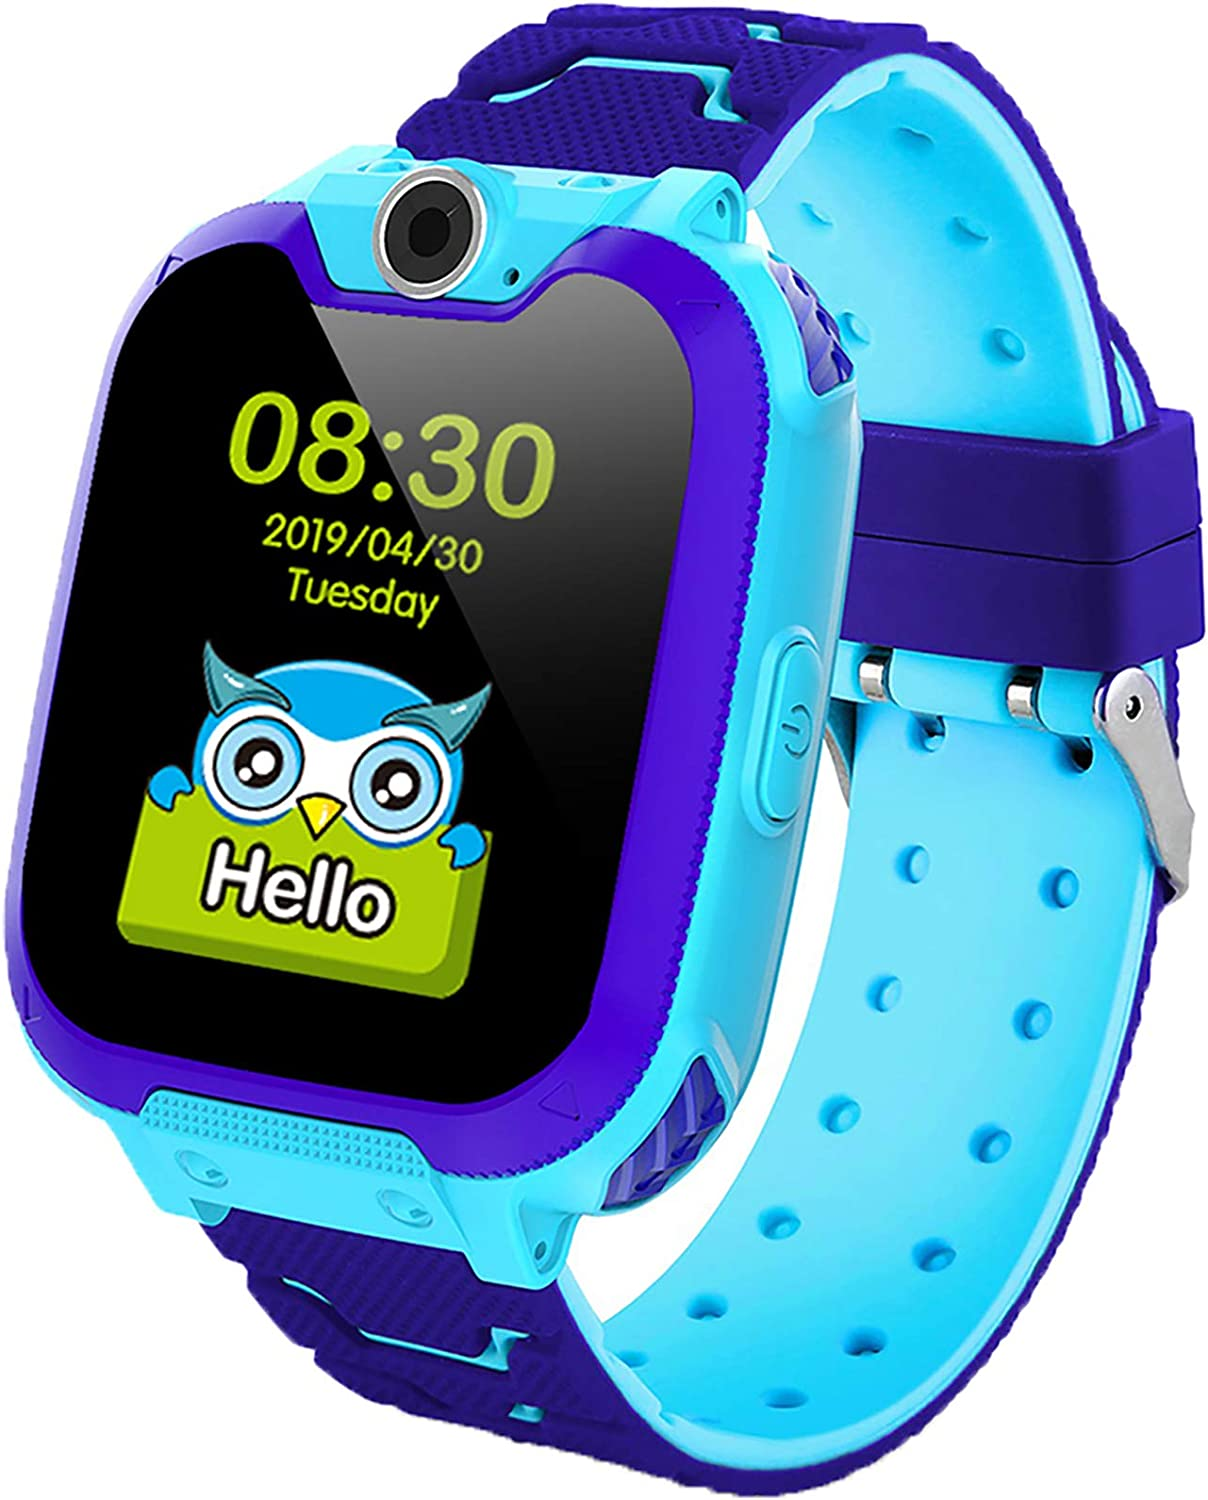 Kids Smart Watch for Boys Girls - Kids Watches with Games - 1.44'' HD Touch Screen Smartwatch for Children with SOS Call Camera Music Player Game Alarm (Blue)